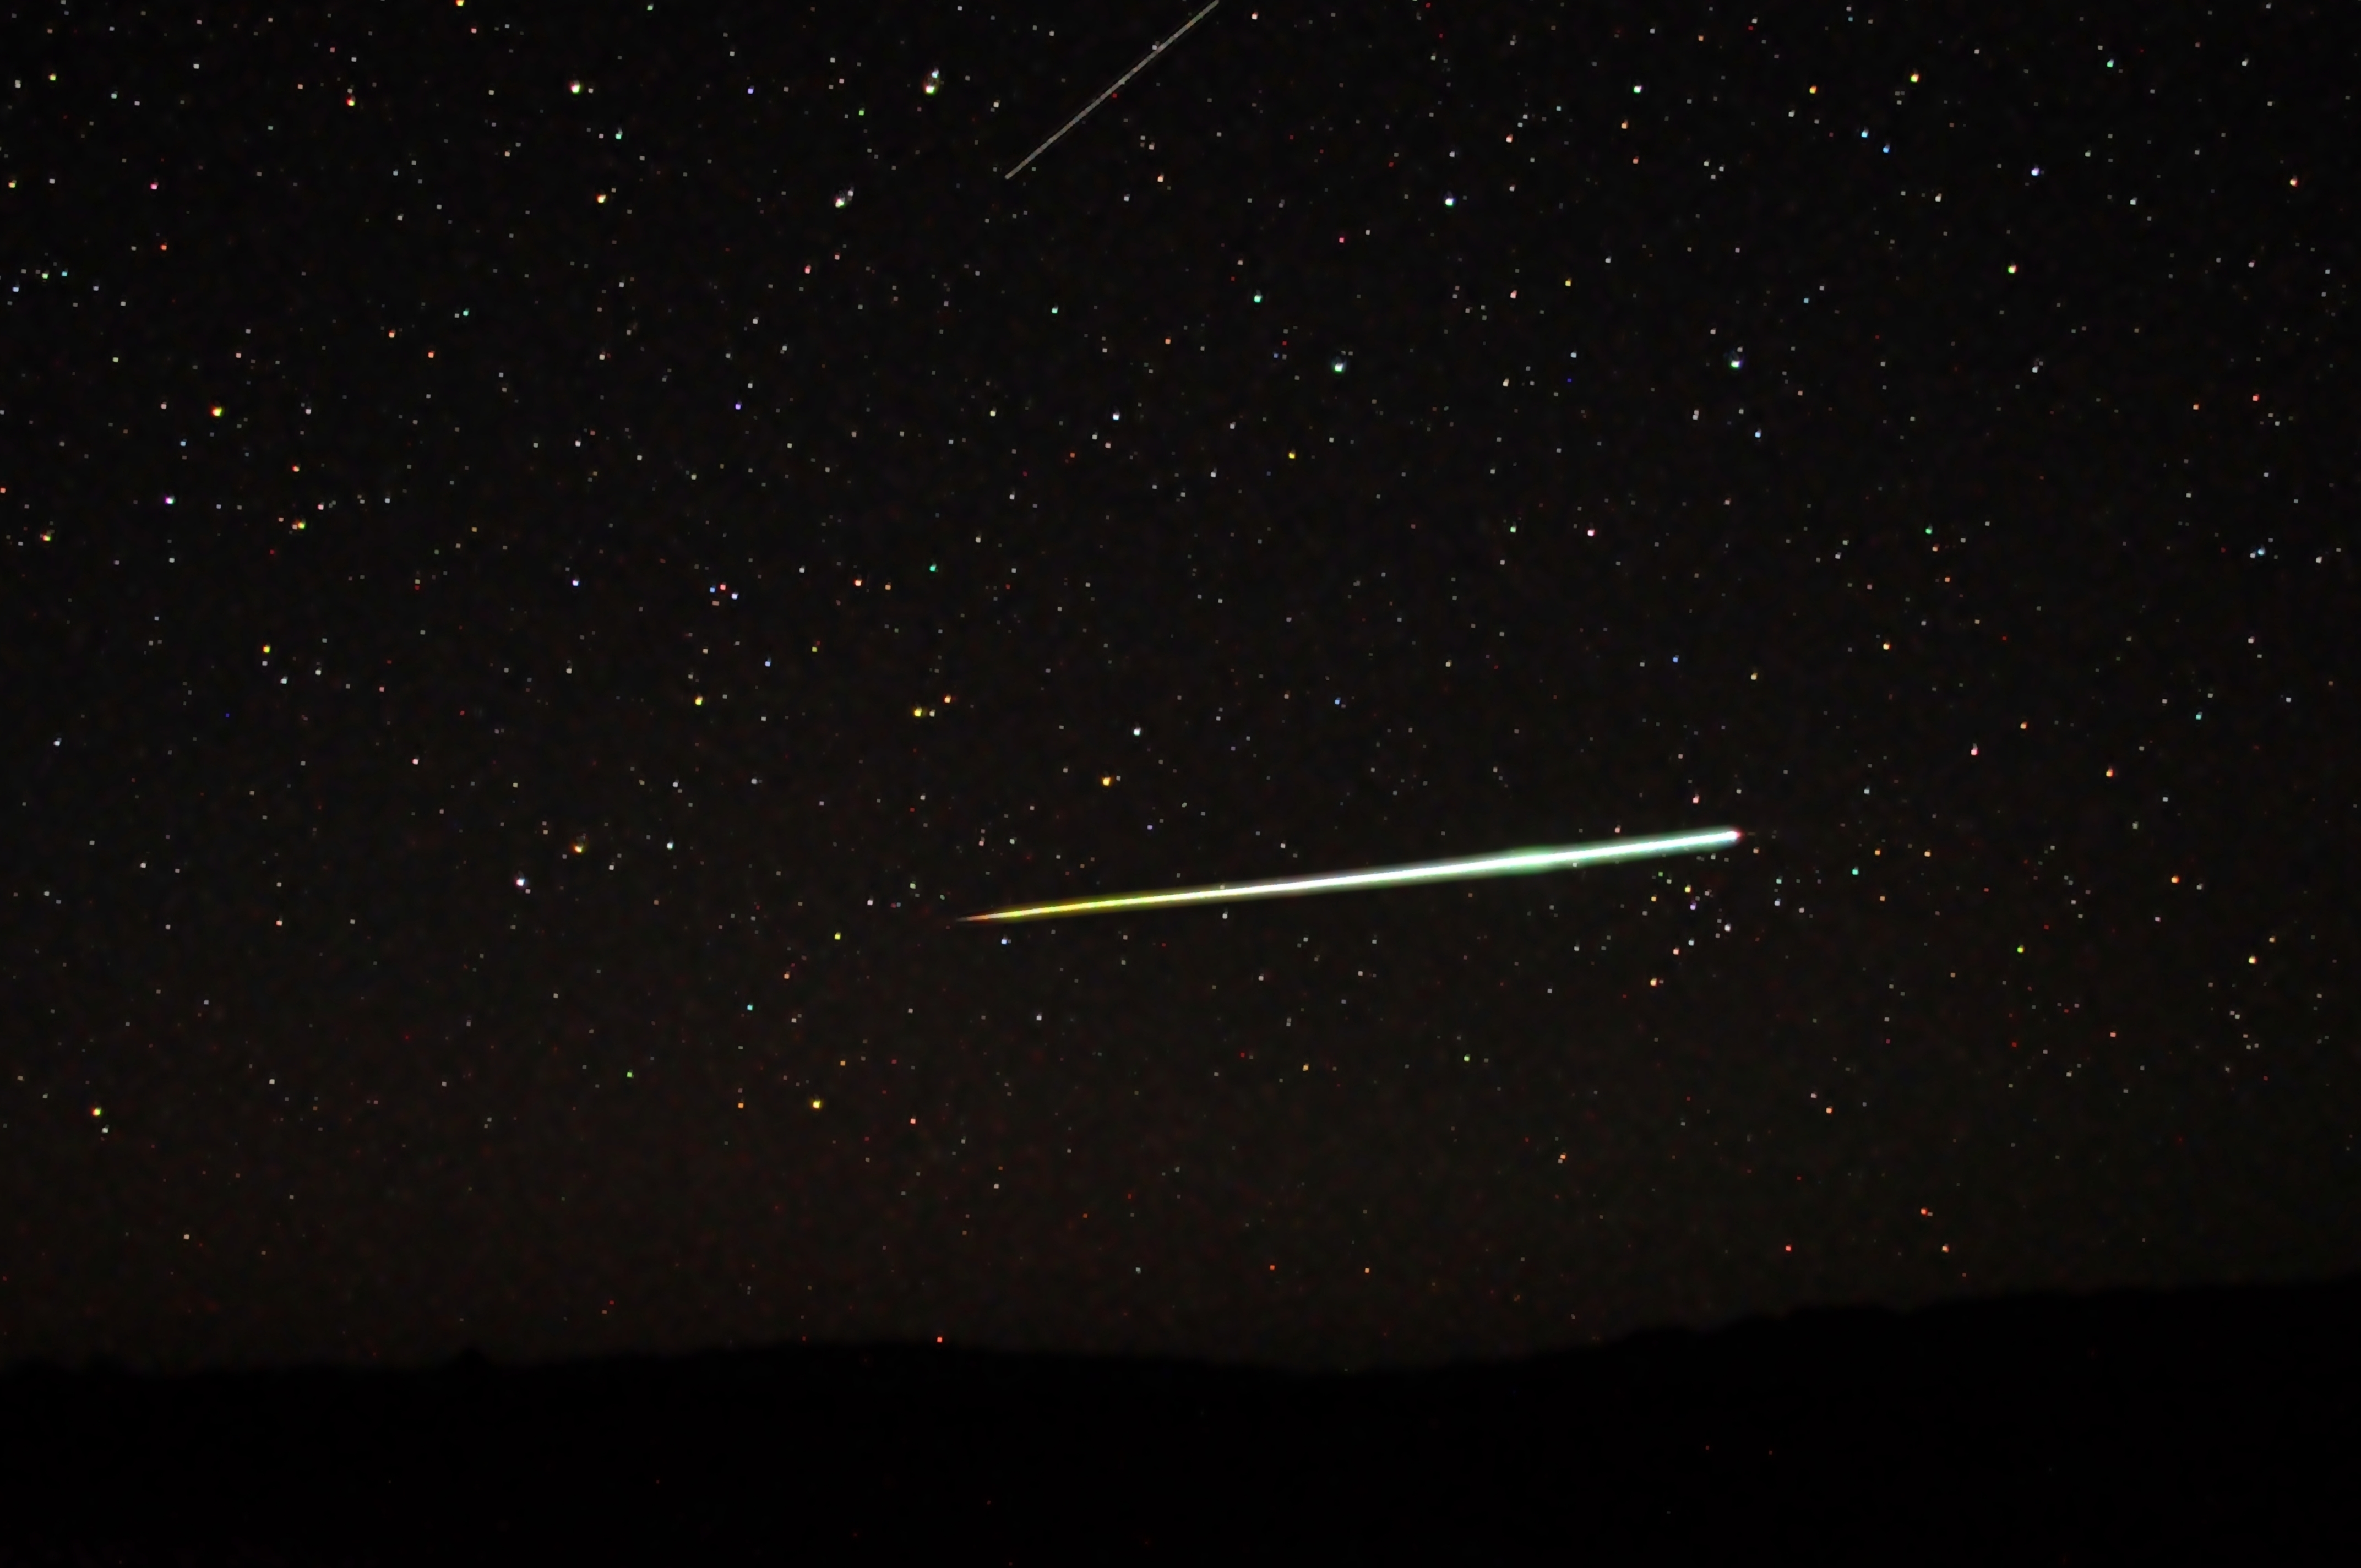 This bolide appeared over the Flinders Ranges, in the South Australian desert on the evening of the 24th April 2011.